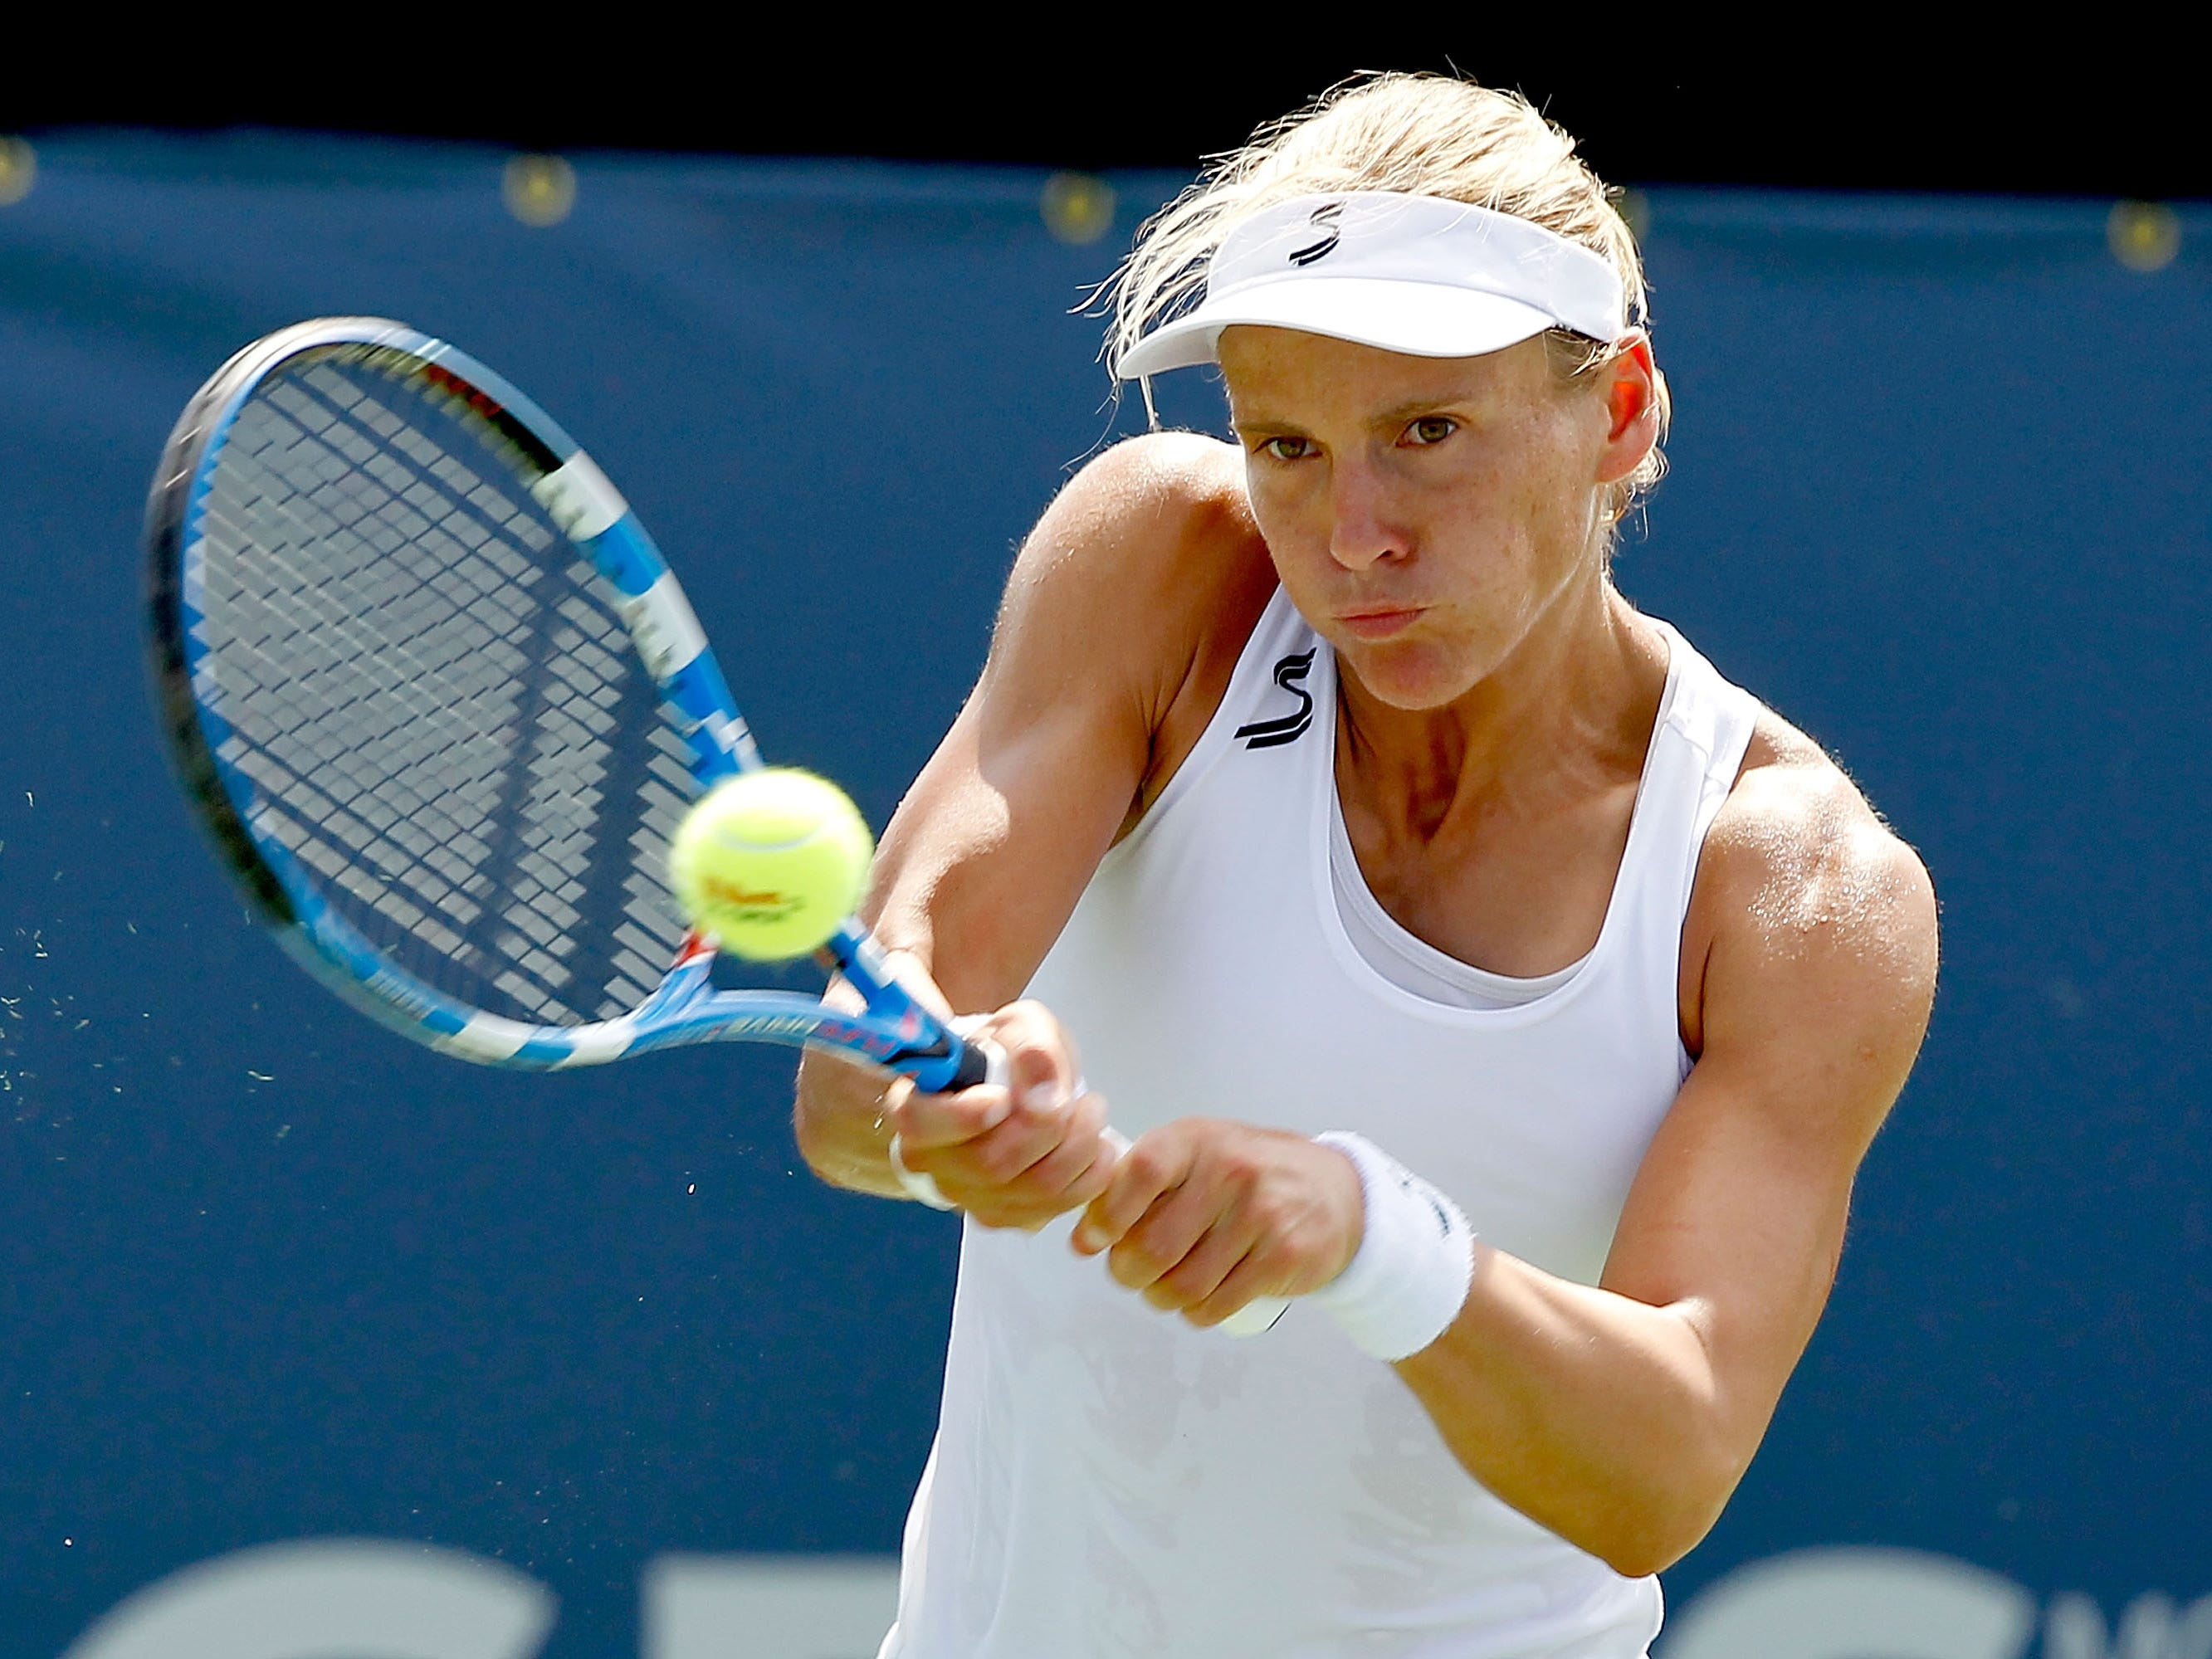 Sybille Bammer (2-0). Bammer retired in 2011 and remains the only player to face Serena multiple times without losing.